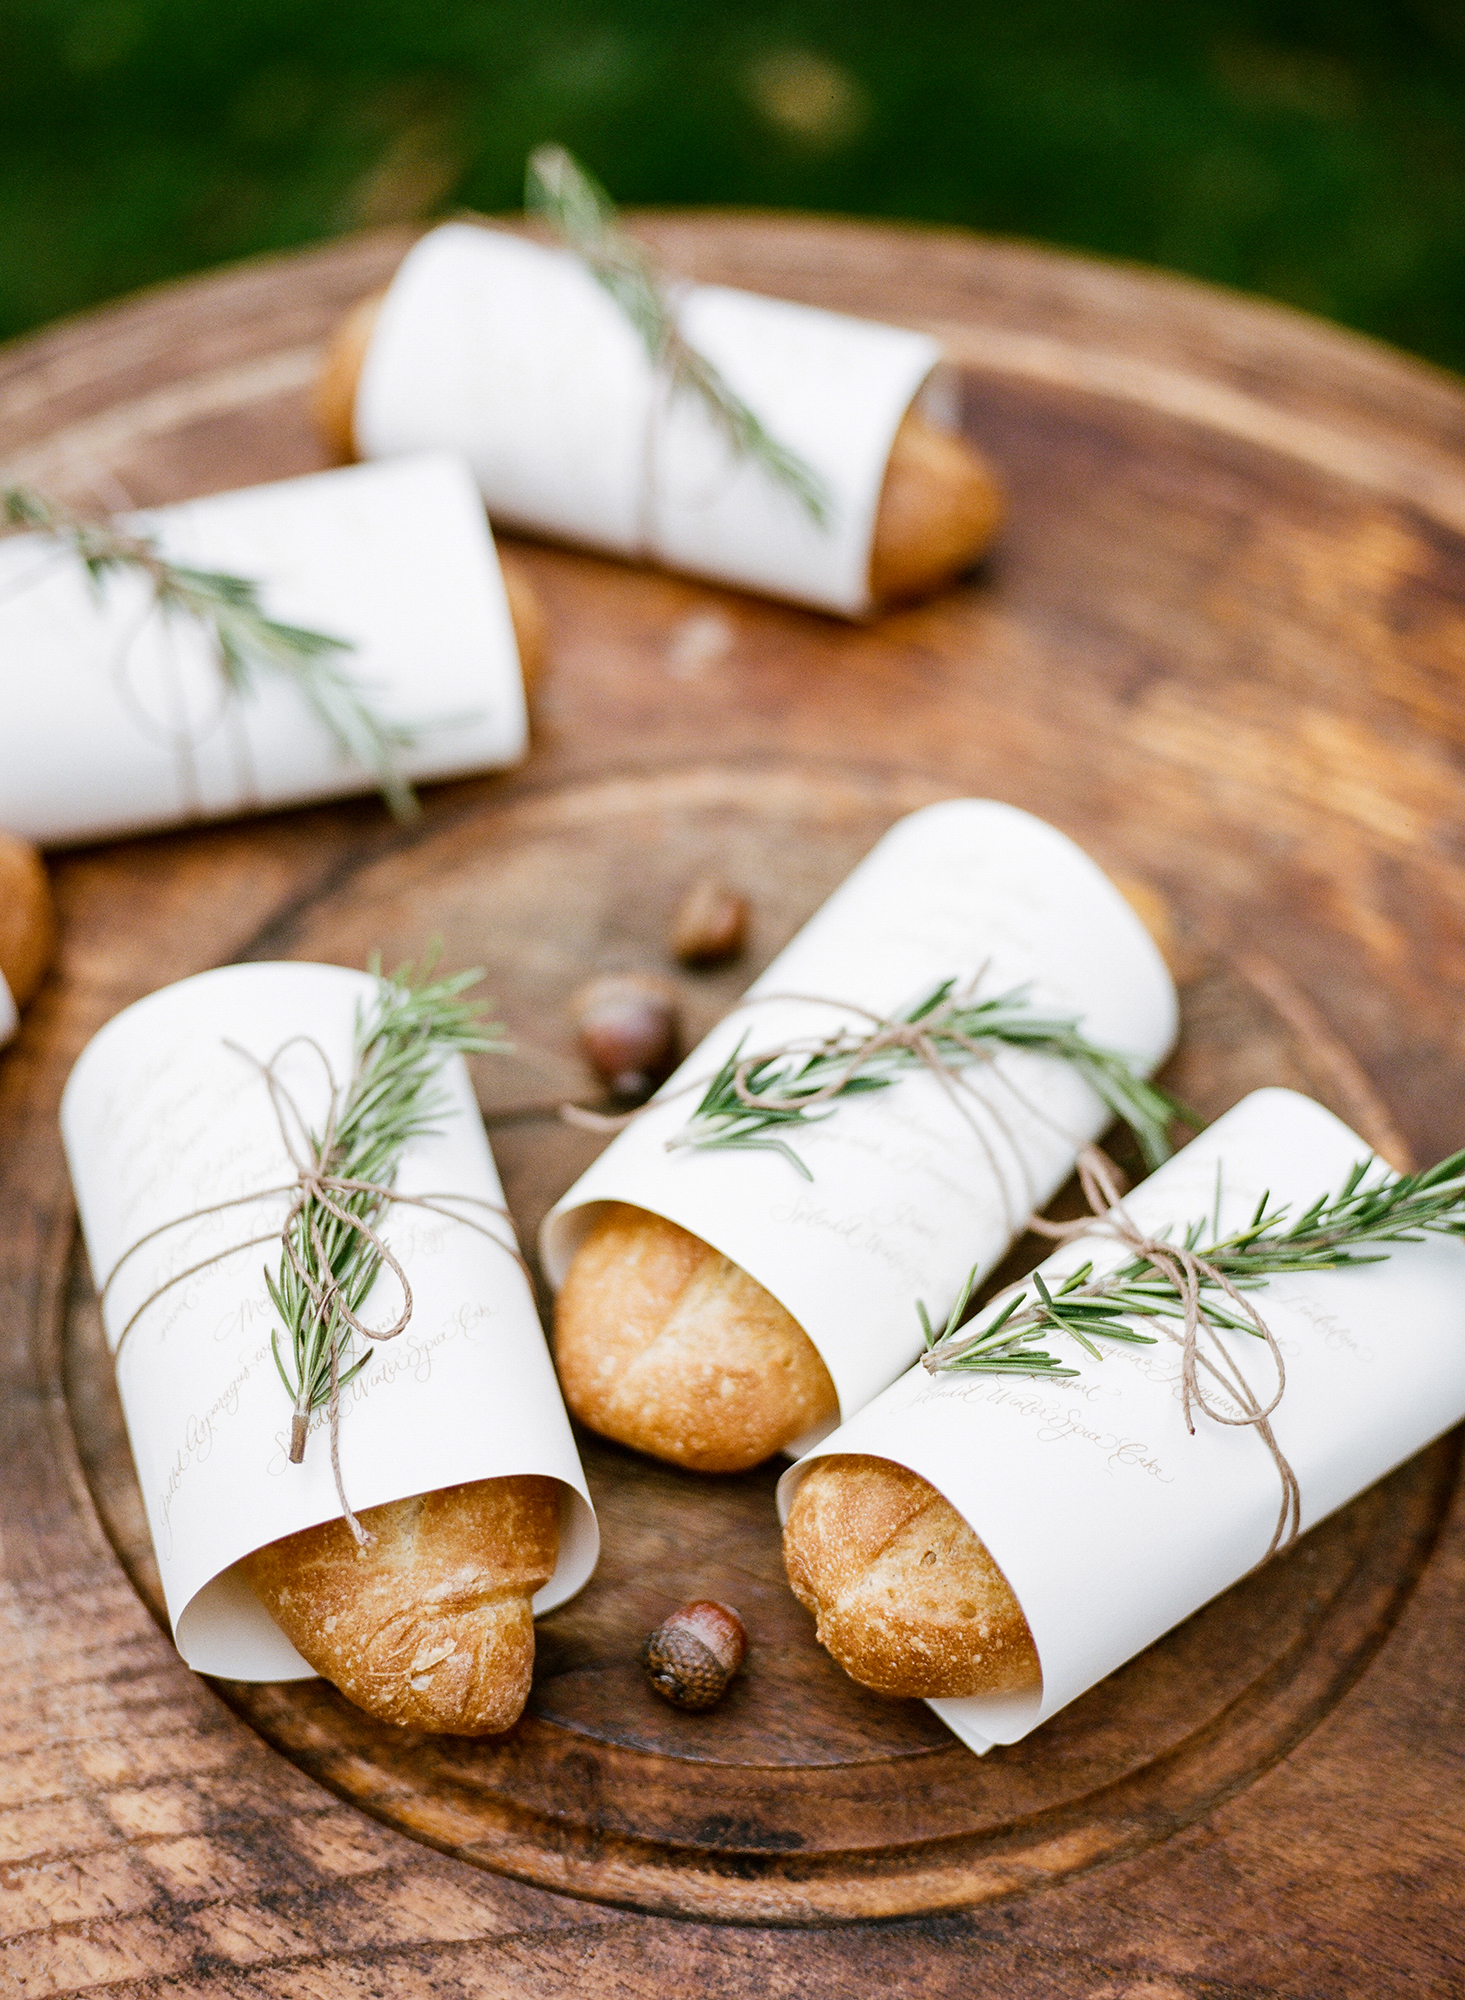 Sometimes a simple baguette is just what your guests need after a night of drinking and dancing. We love the rustic details added to this hearty, hassle-free favor by Rebecca Rose Events.